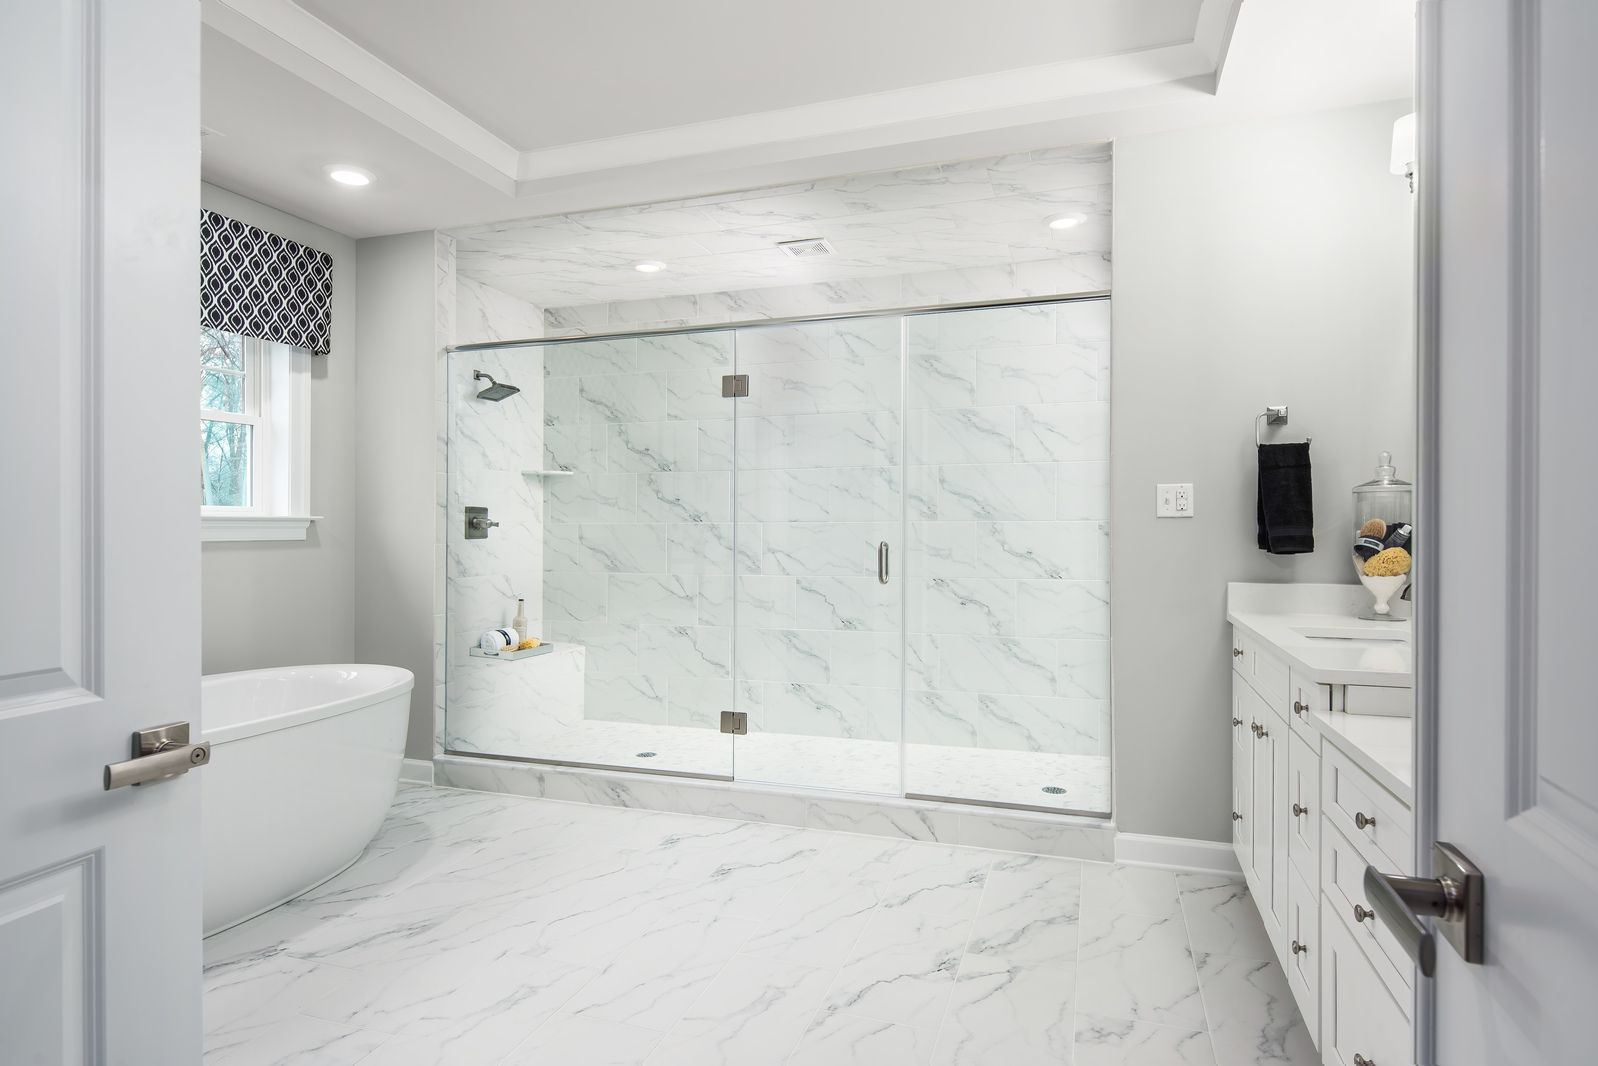 Bathroom featured in the Clifton Park II By NVHomes in Philadelphia, PA